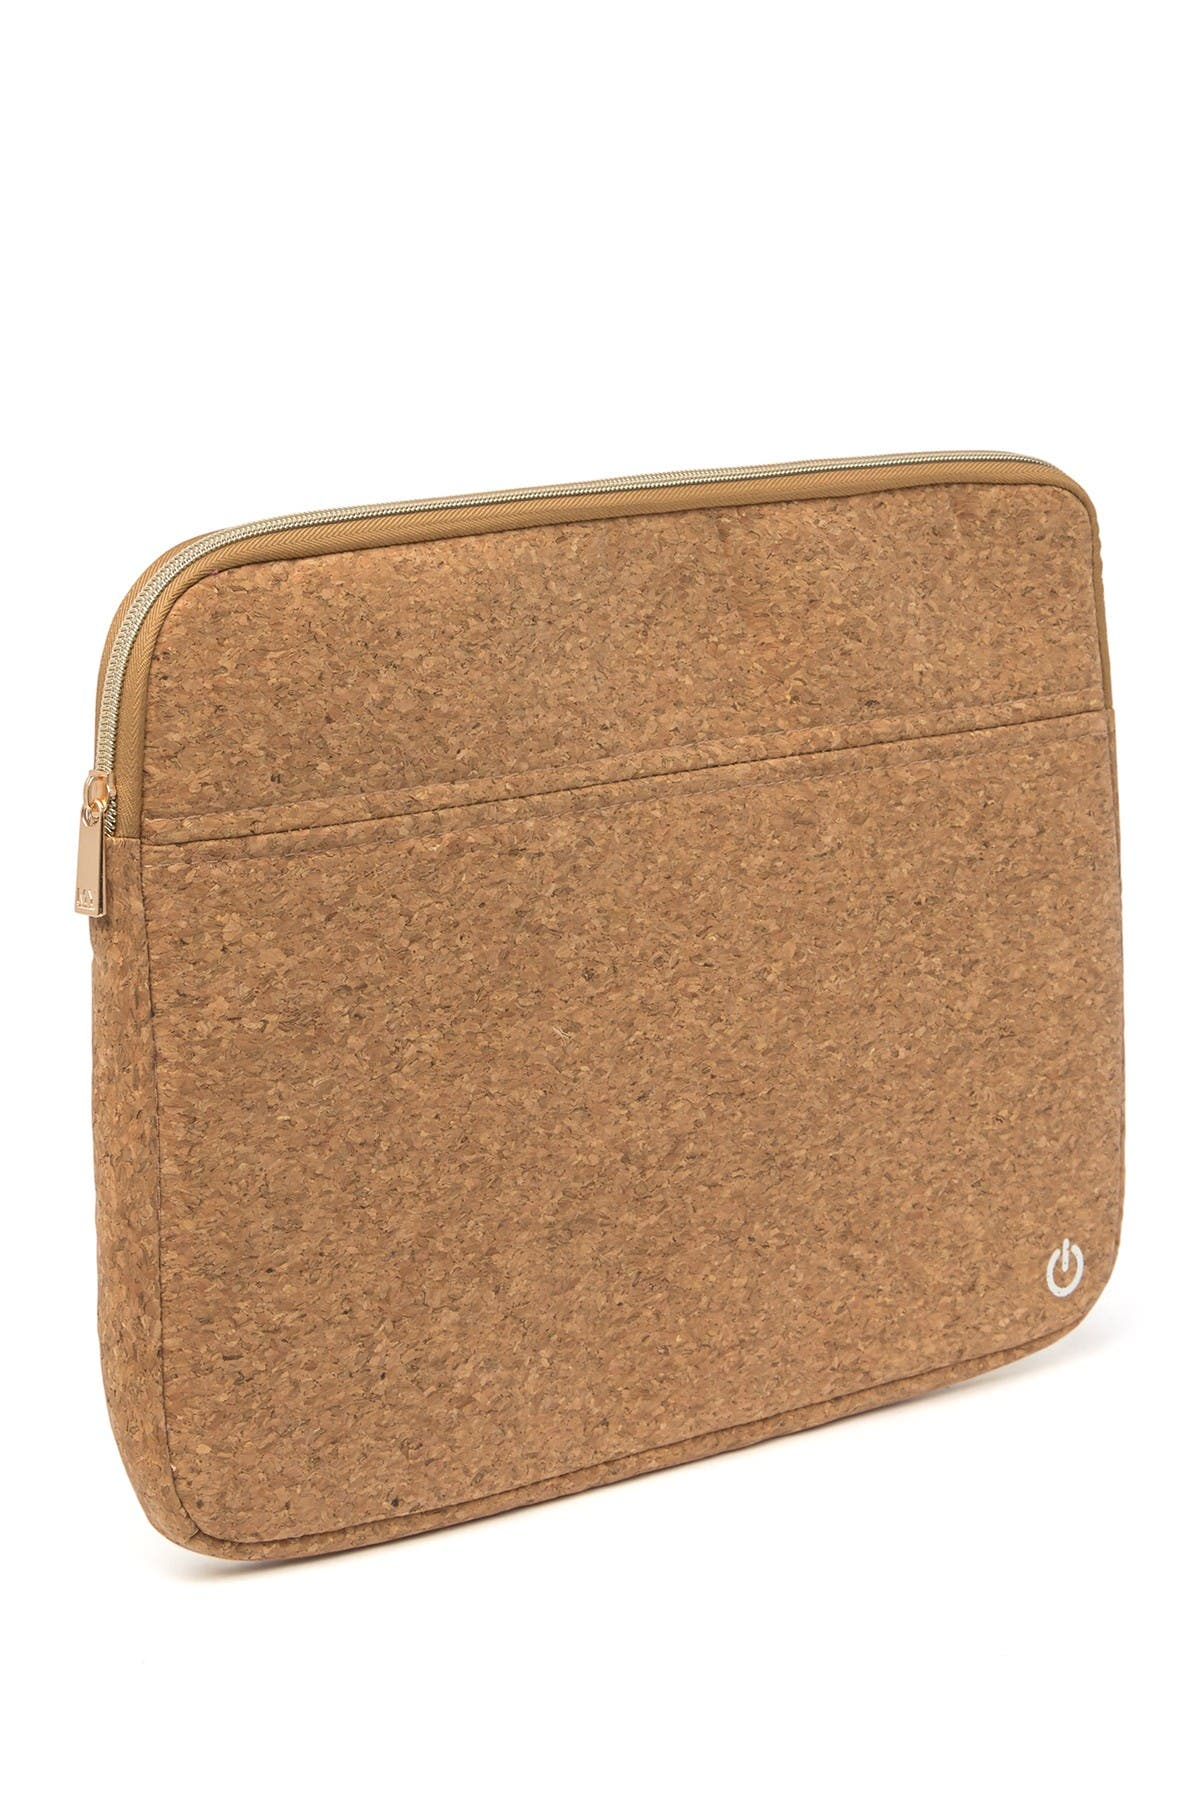 Image of MYTAGALONGS Oak Laptop Sleeve